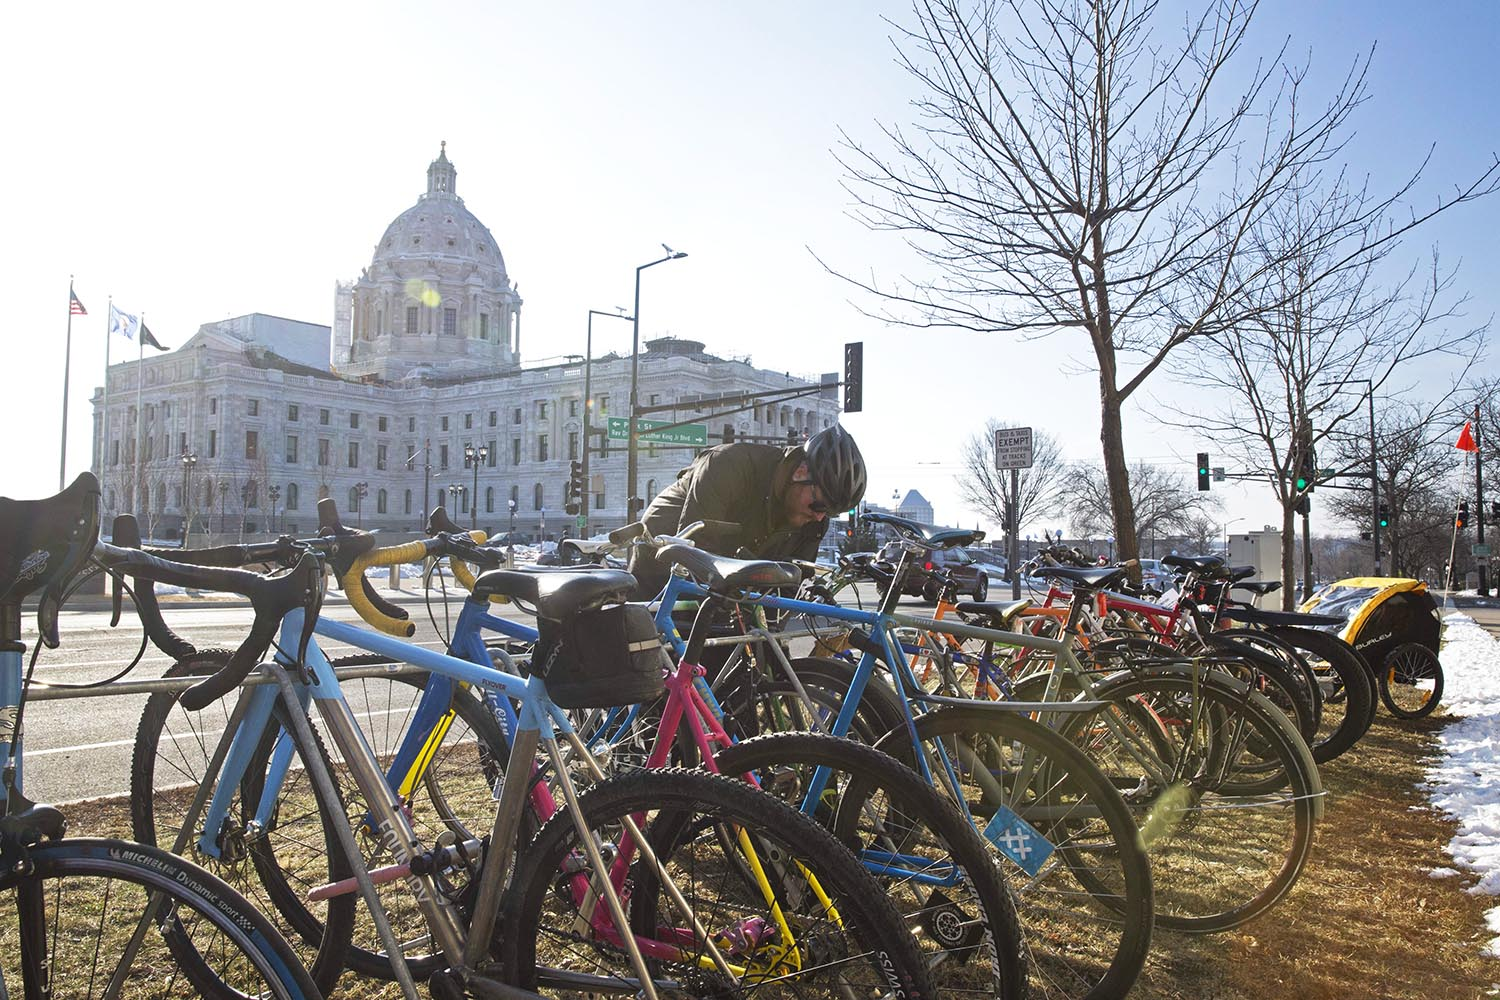 Each year, QBP employees spend time lobbying their legislators at the Minnesota Bike Summit. These efforts shine a light on legislation that involves better bike infrastructure, improved bike laws, and safe routes to schools, just to name a few.